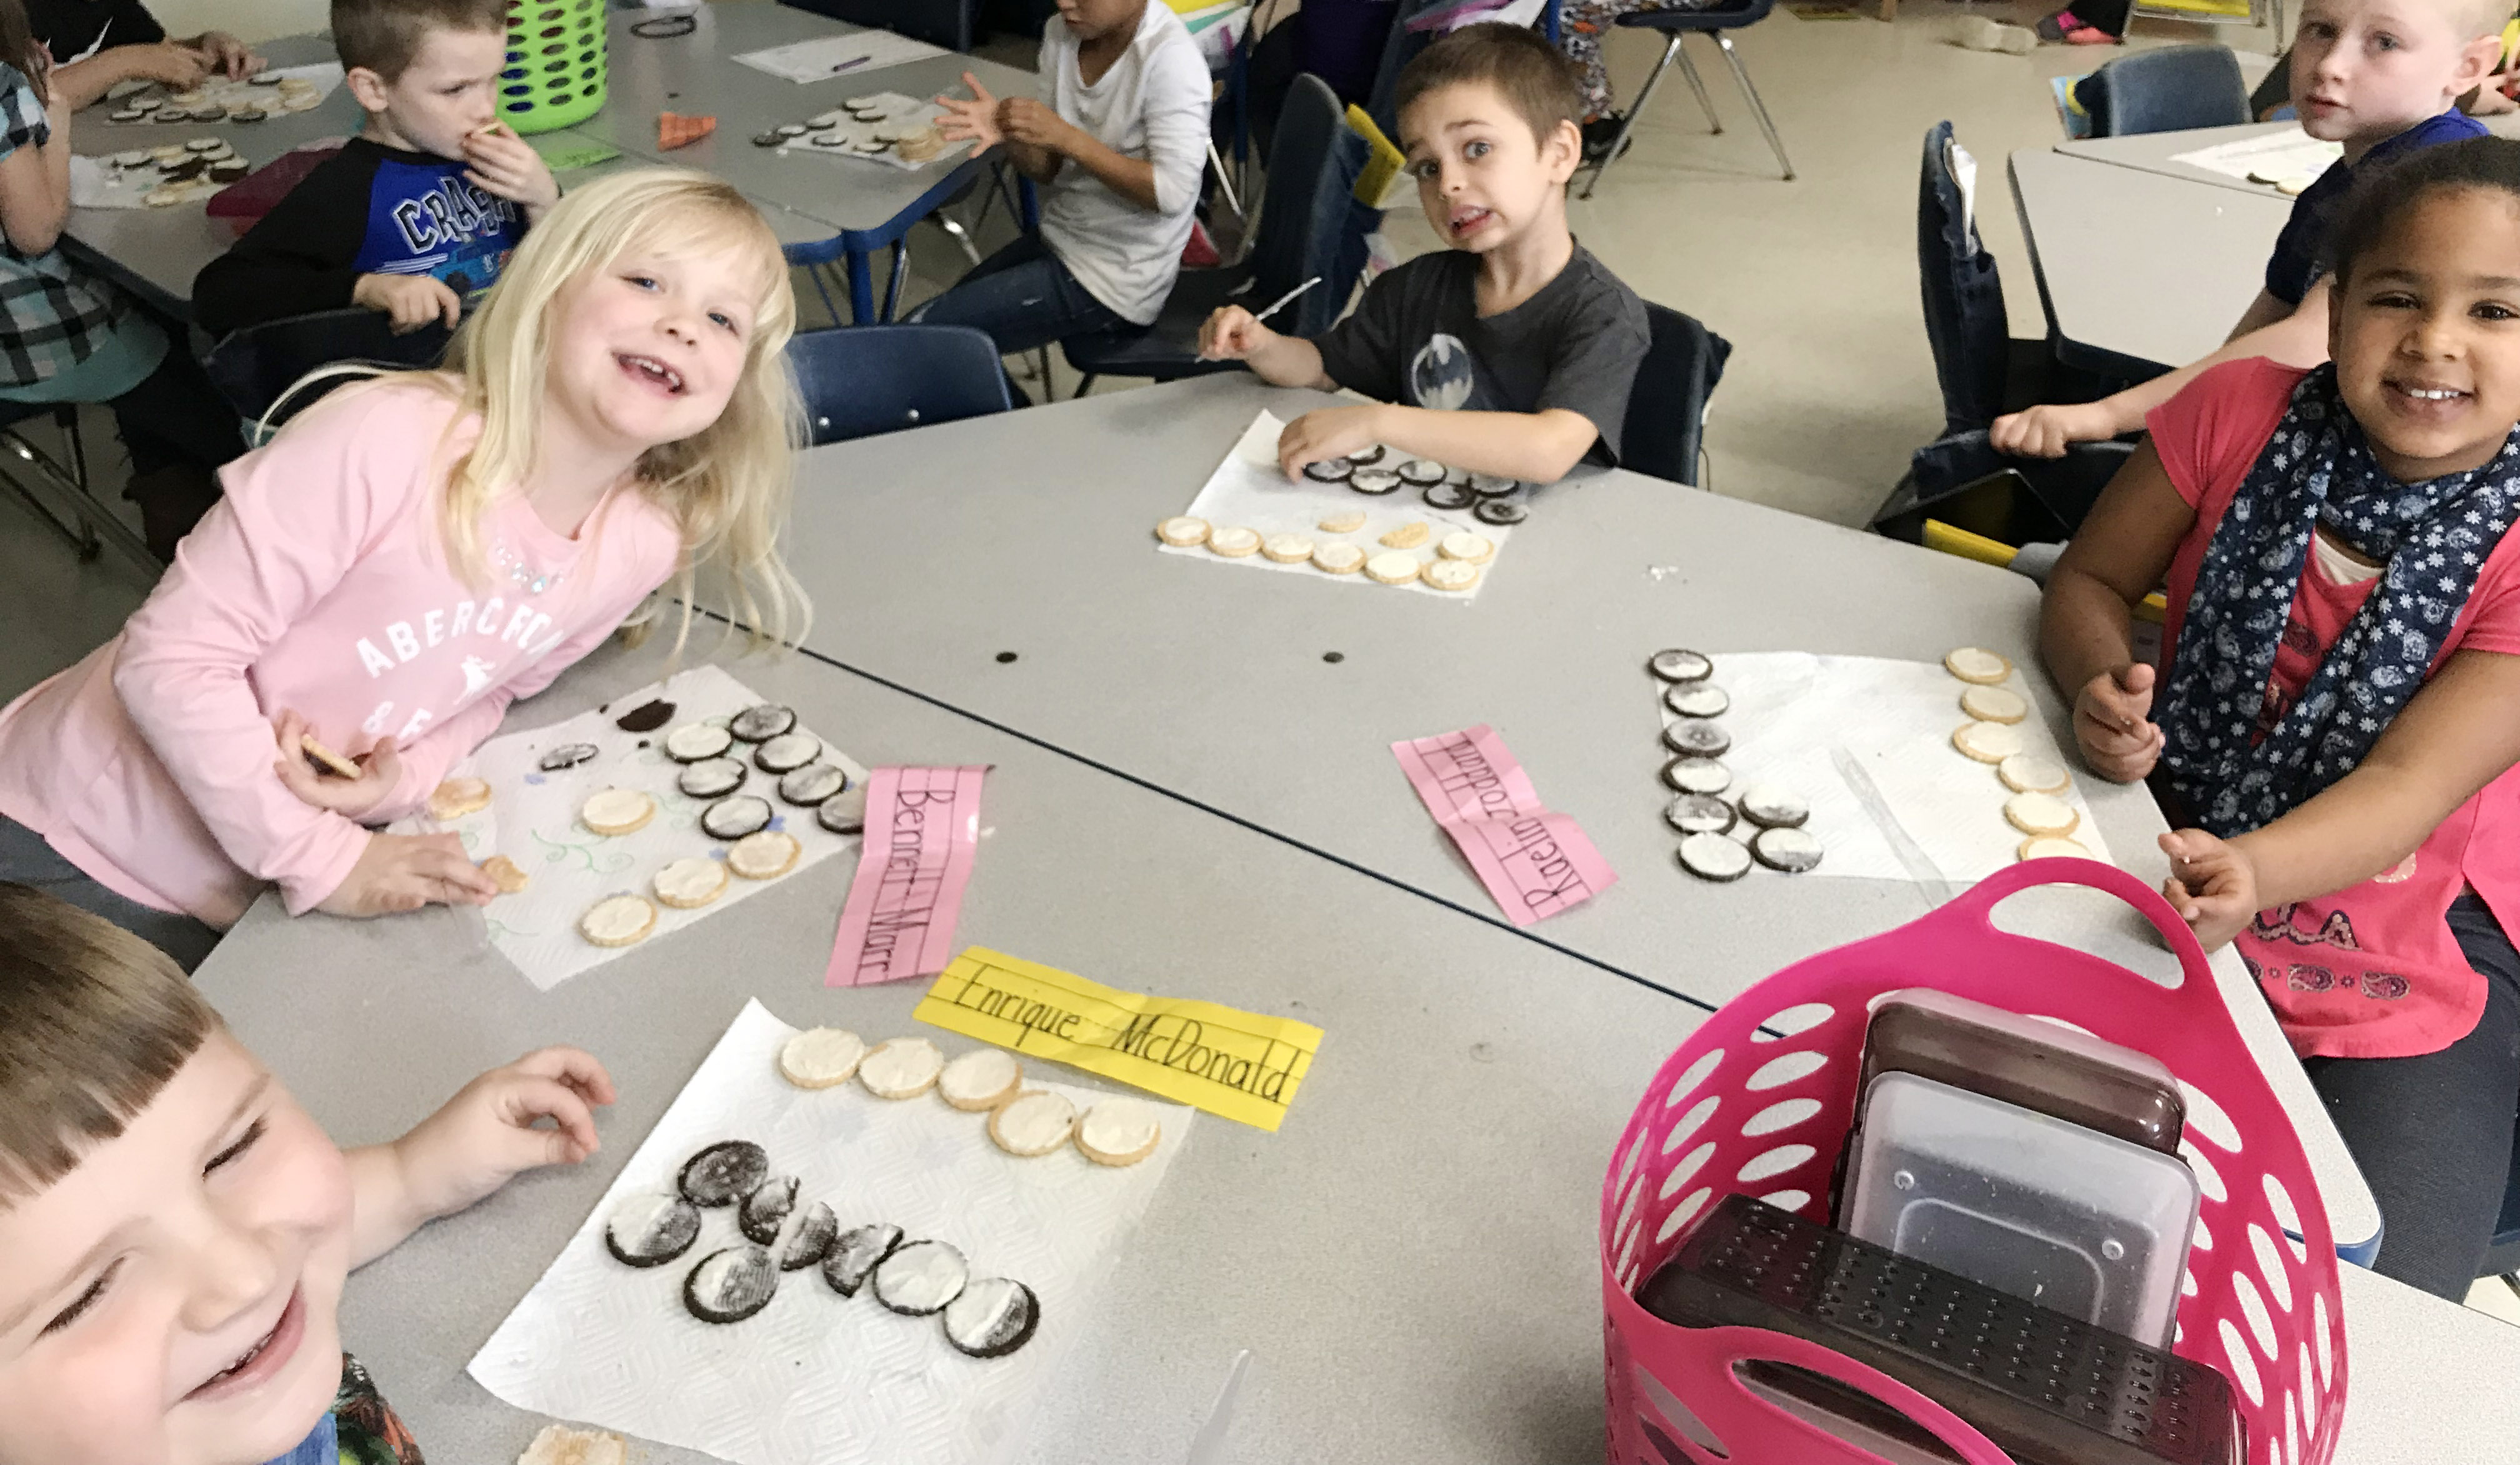 CES first-graders, from left, Enrique McDonald, Ava Bennett-Marr, Michael Terry and Raelin Goddard make the phases of the moon by using cream filled cookies.